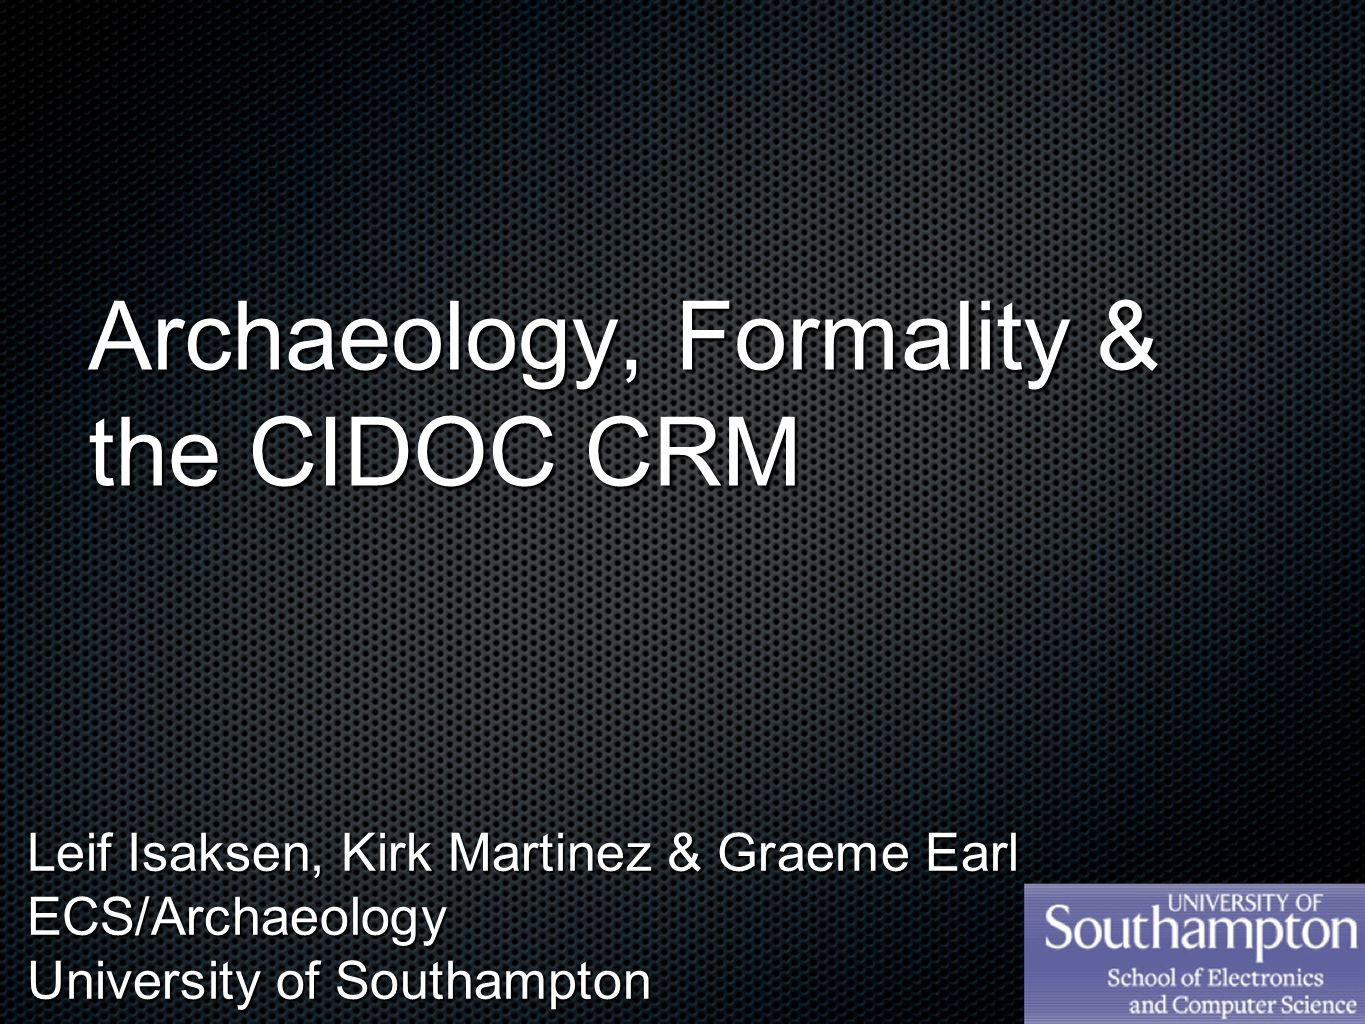 Archaeology, Formality & the CIDOC CRM Leif Isaksen, Kirk Martinez & Graeme Earl ECS/Archaeology University of Southampton